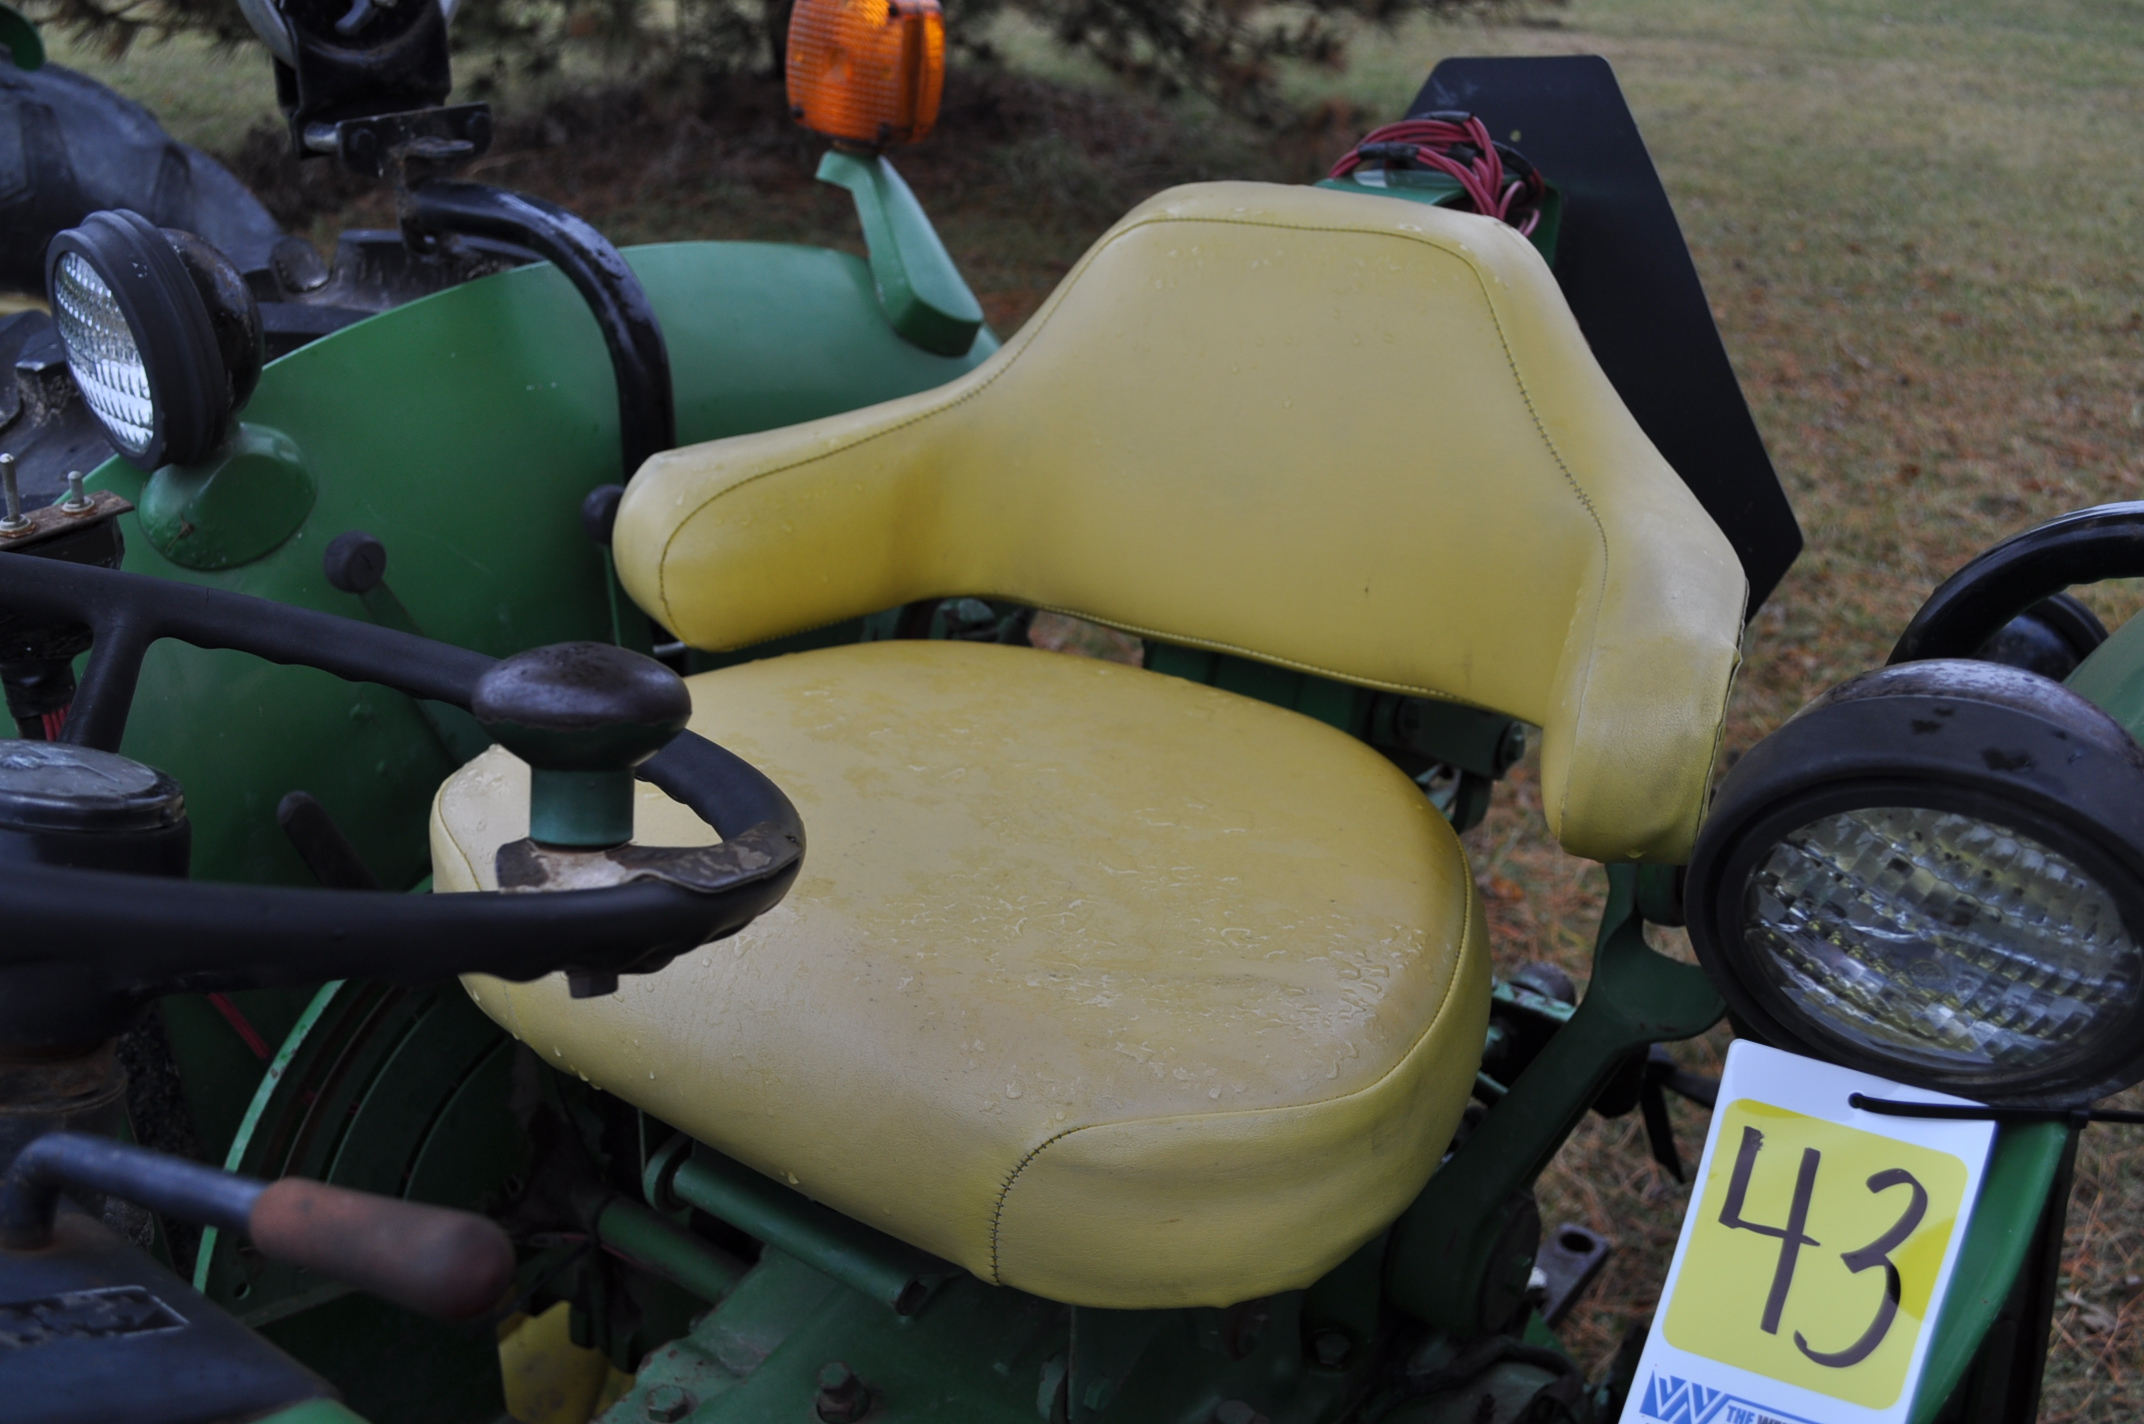 John Deere 2030 tractor, diesel, 16.9-28 rear, 7.5-15 front, canopy, power shuttle, 2 hyd remotes, - Image 16 of 20